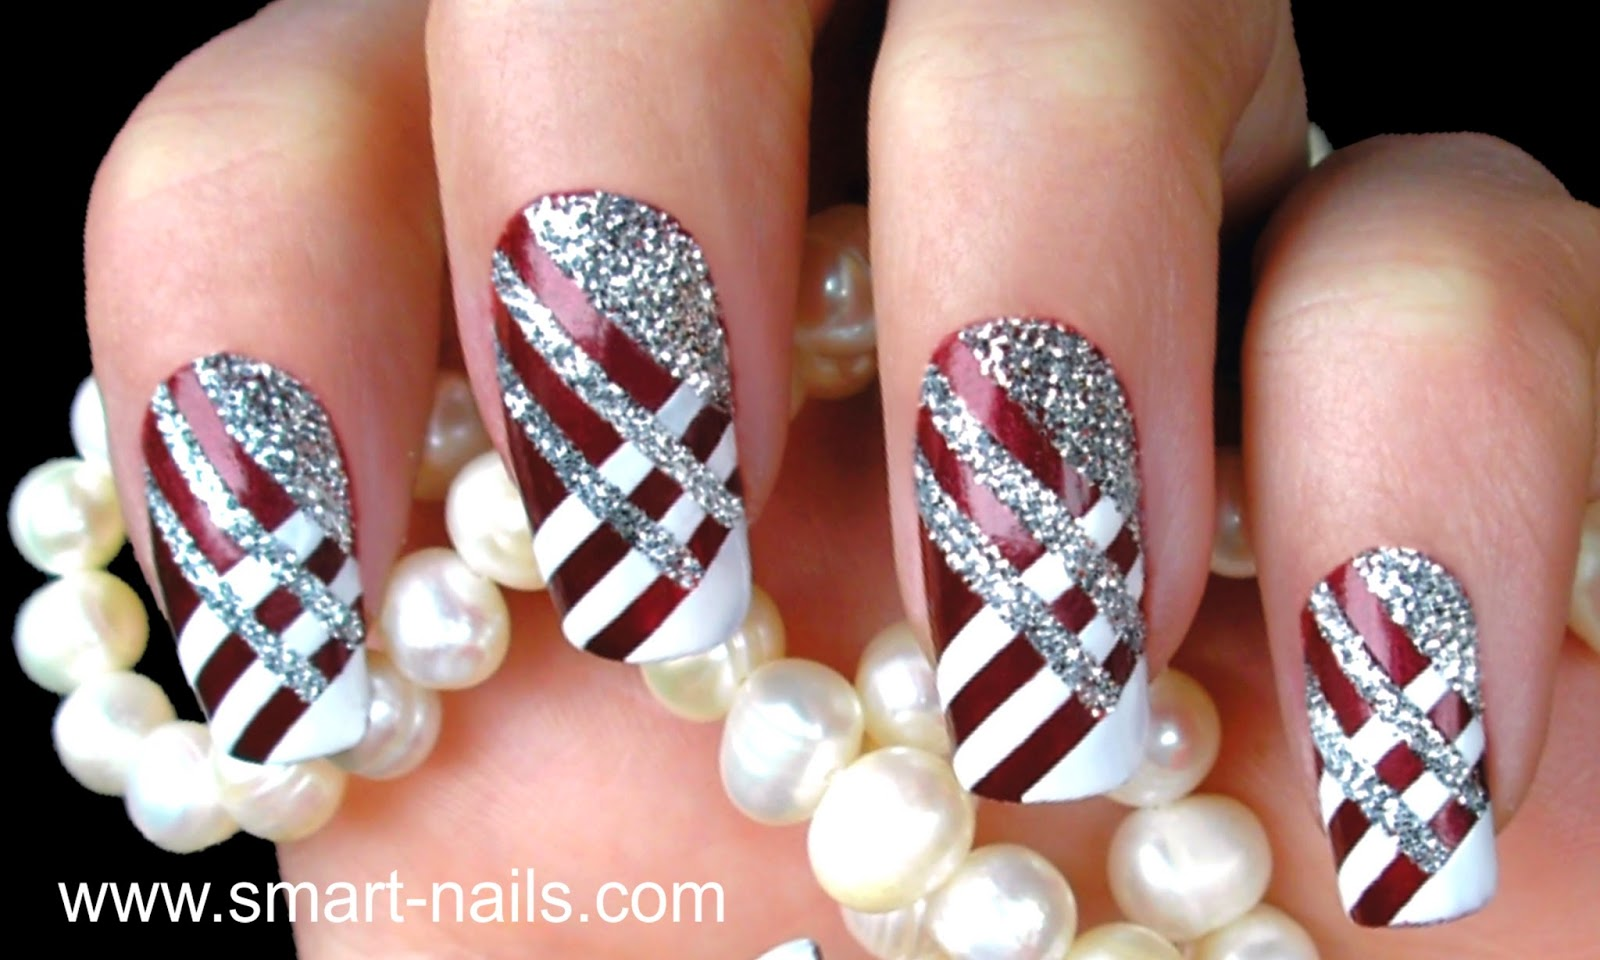 smart-nails: How to reuse the smART nails stencils